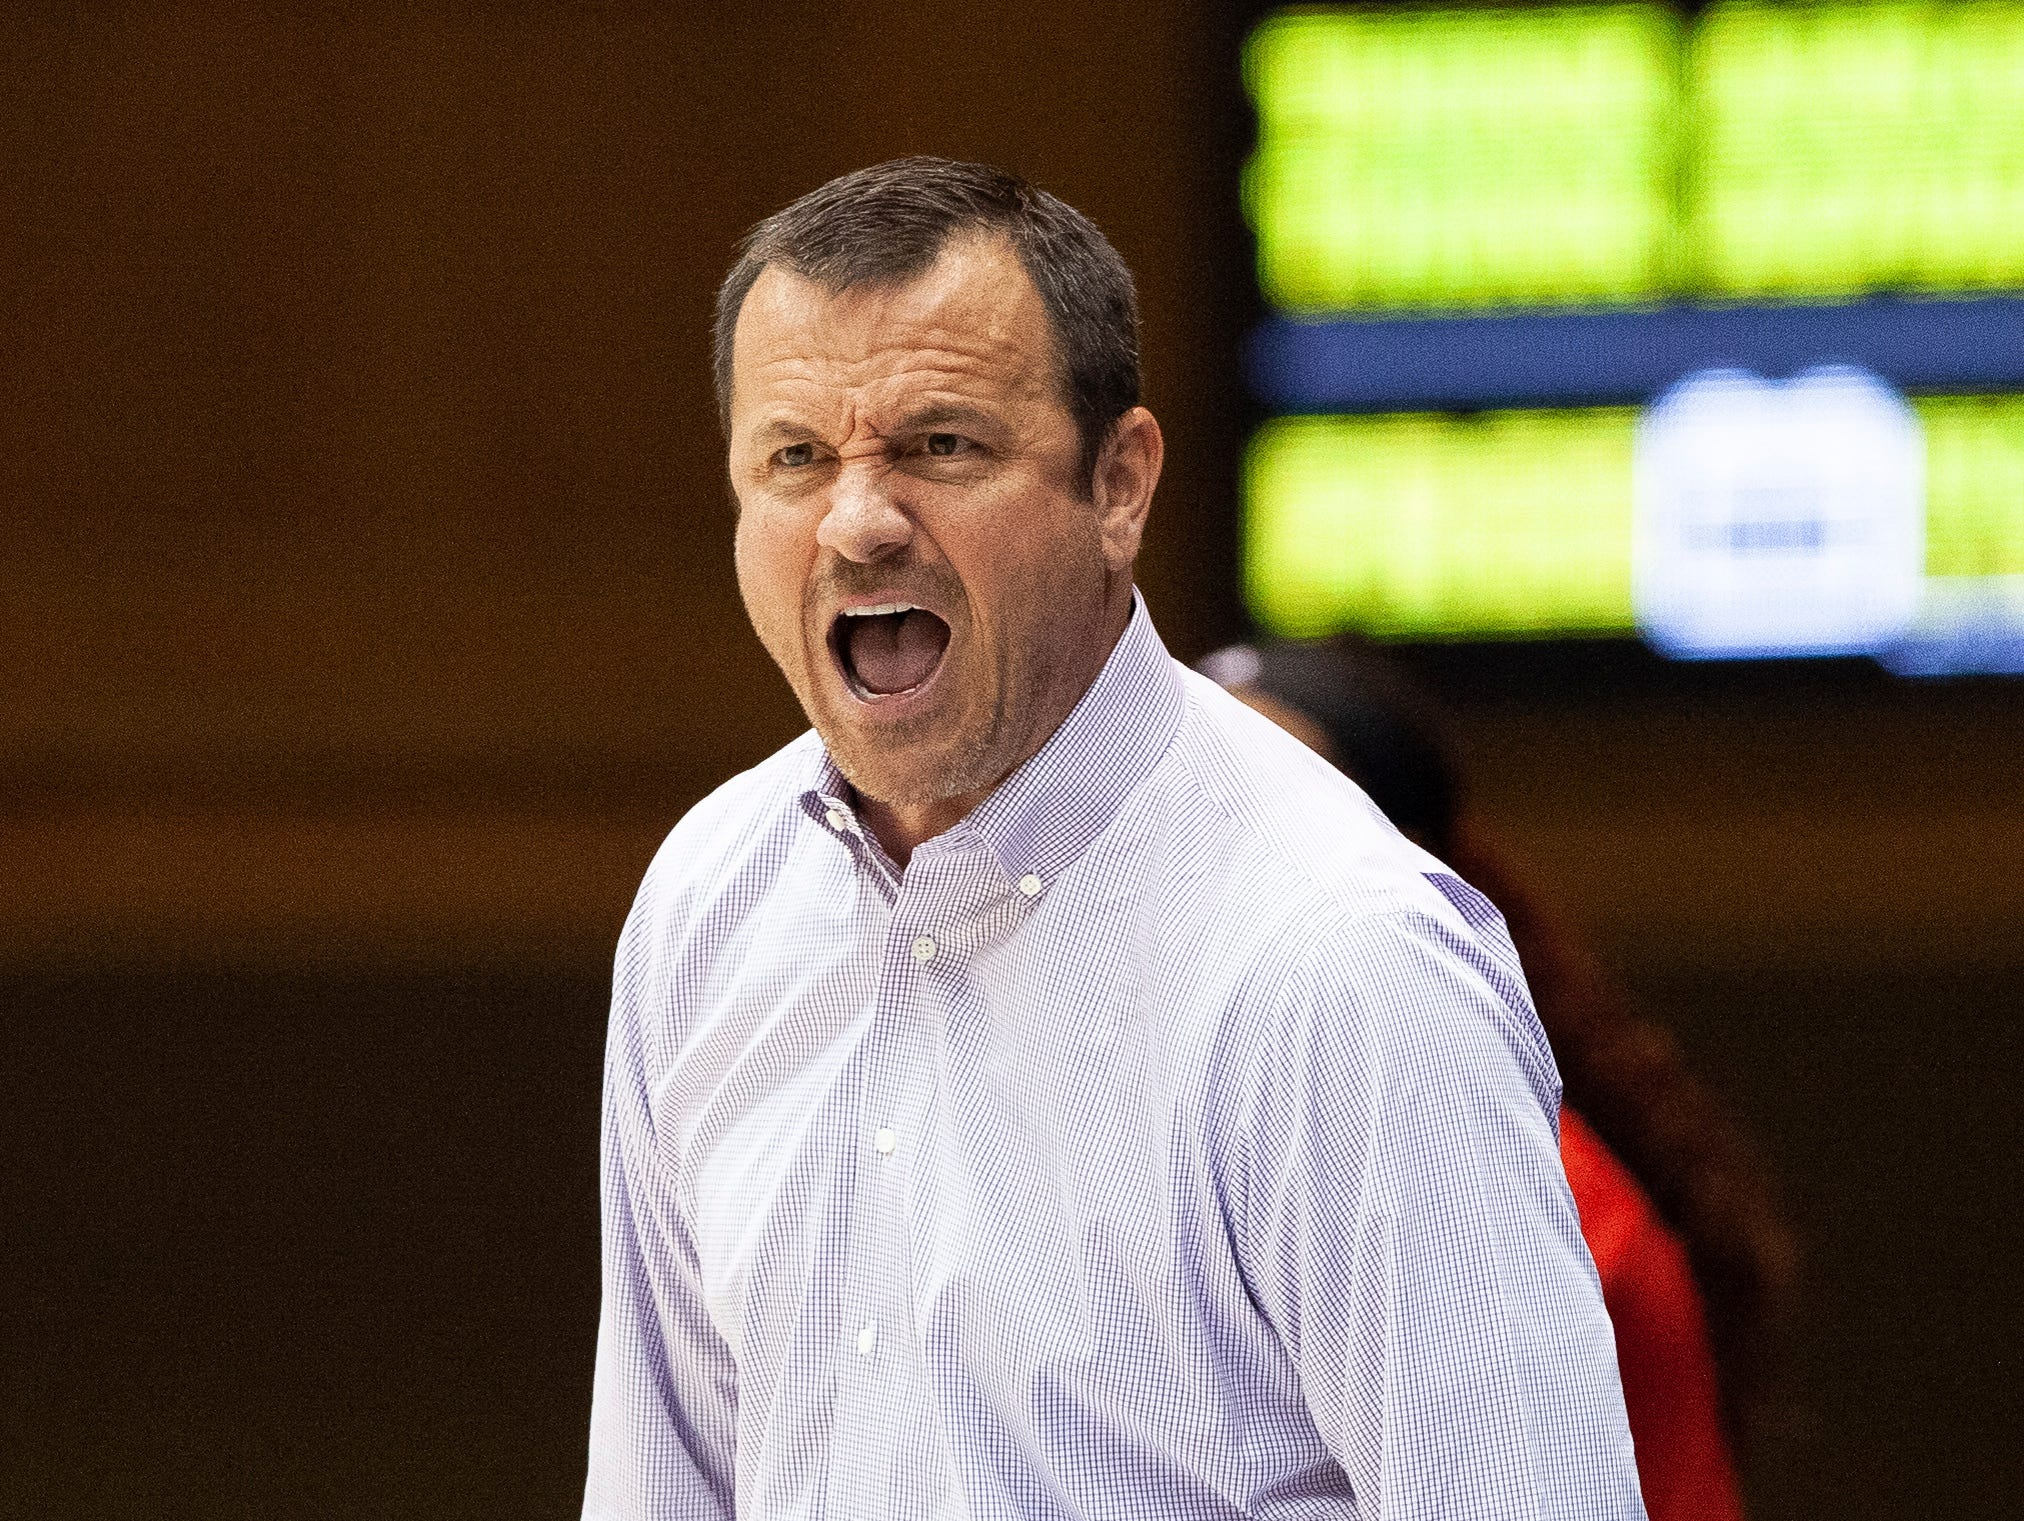 Louisville Head Coach Jeff Walz shouts toward the court during the second half of an NCAA college basketball game against Duke in Durham, N.C., Sunday, Jan. 6, 2019.